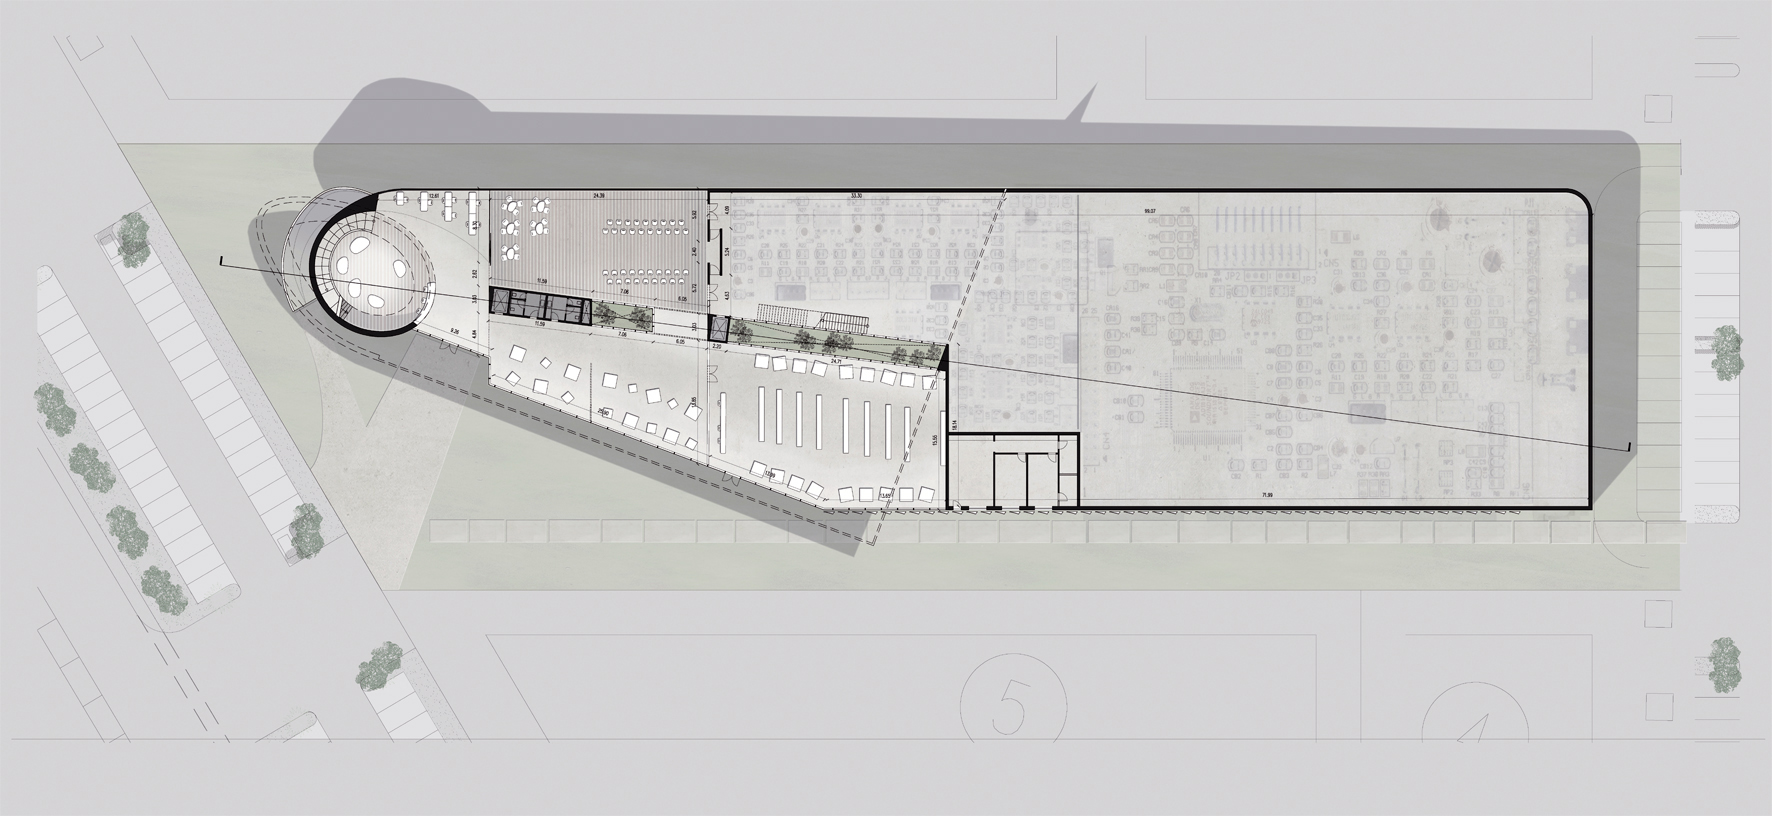 site plan   On the inside, the knot is where the level change between the two floors takes place, generating a dynamic double height space. The exterior cladding is shaped according to the window openings both horizontal and vertical which both encloses and describes the volumes of the building.